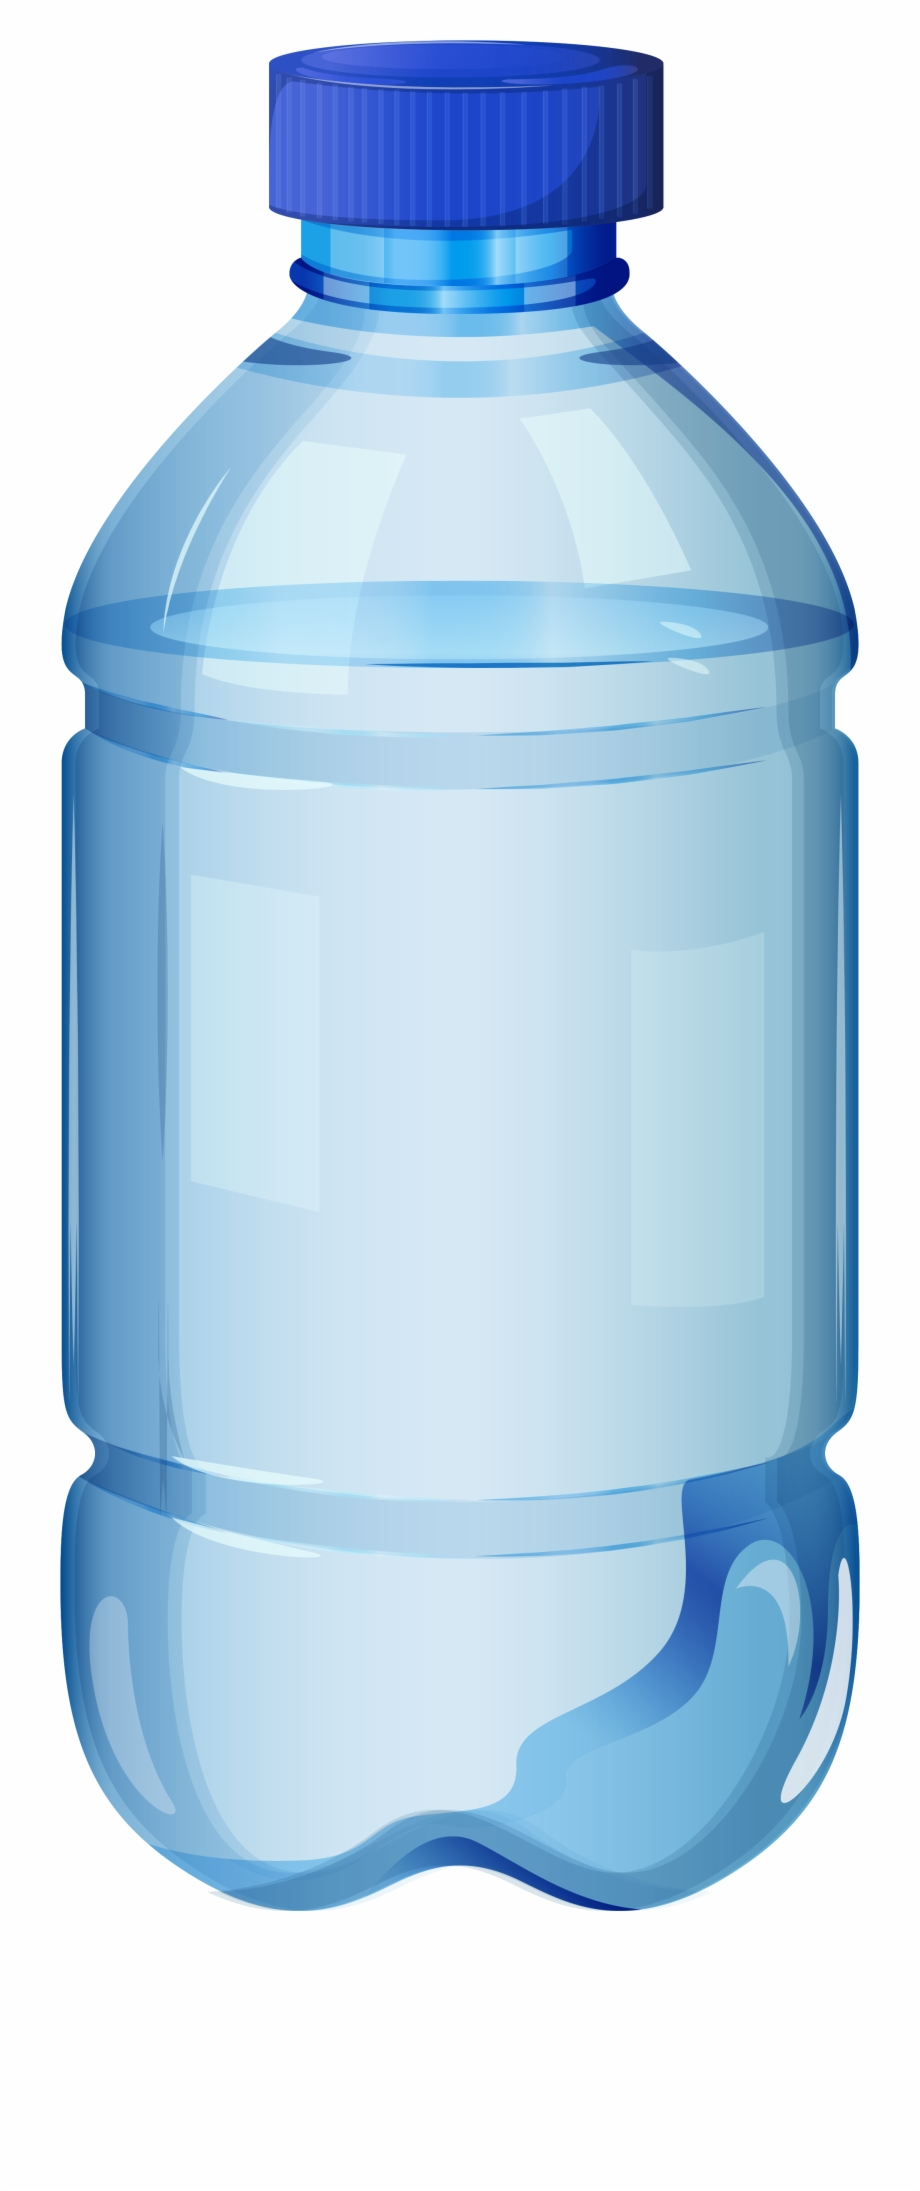 Waterbottle clipart png image royalty free Water Bottle Png Image - Water Bottle Clipart Free PNG ... image royalty free